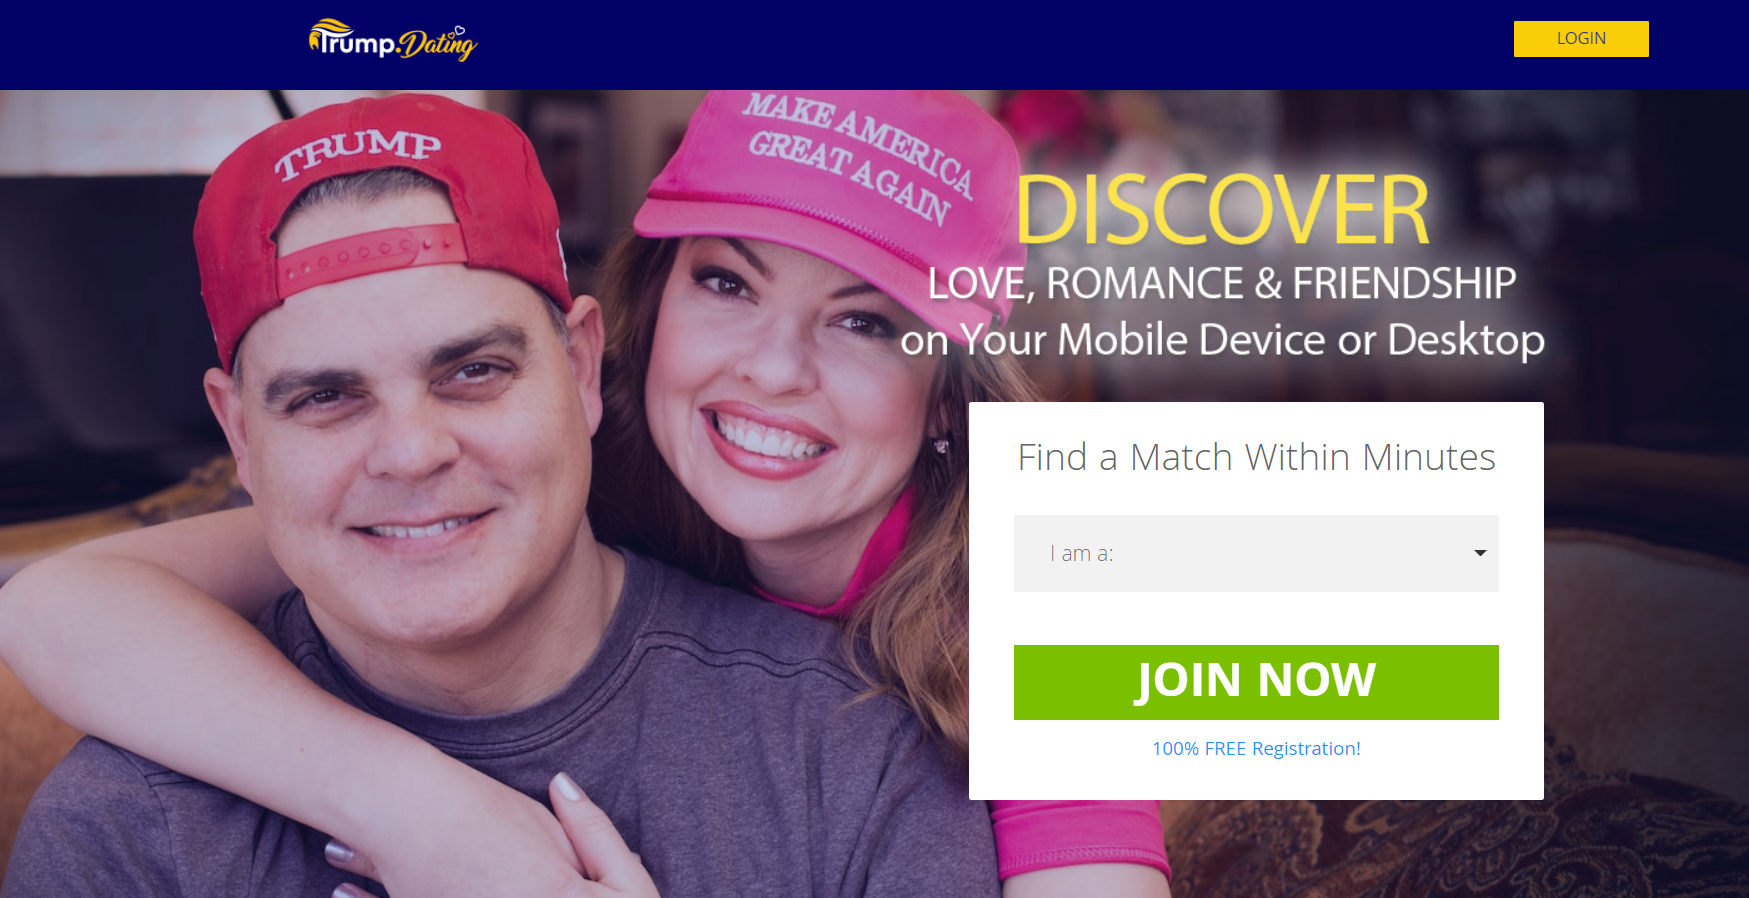 Donald Trump supporters can meet potential partners on new dating website – but it's got one controversial requirement